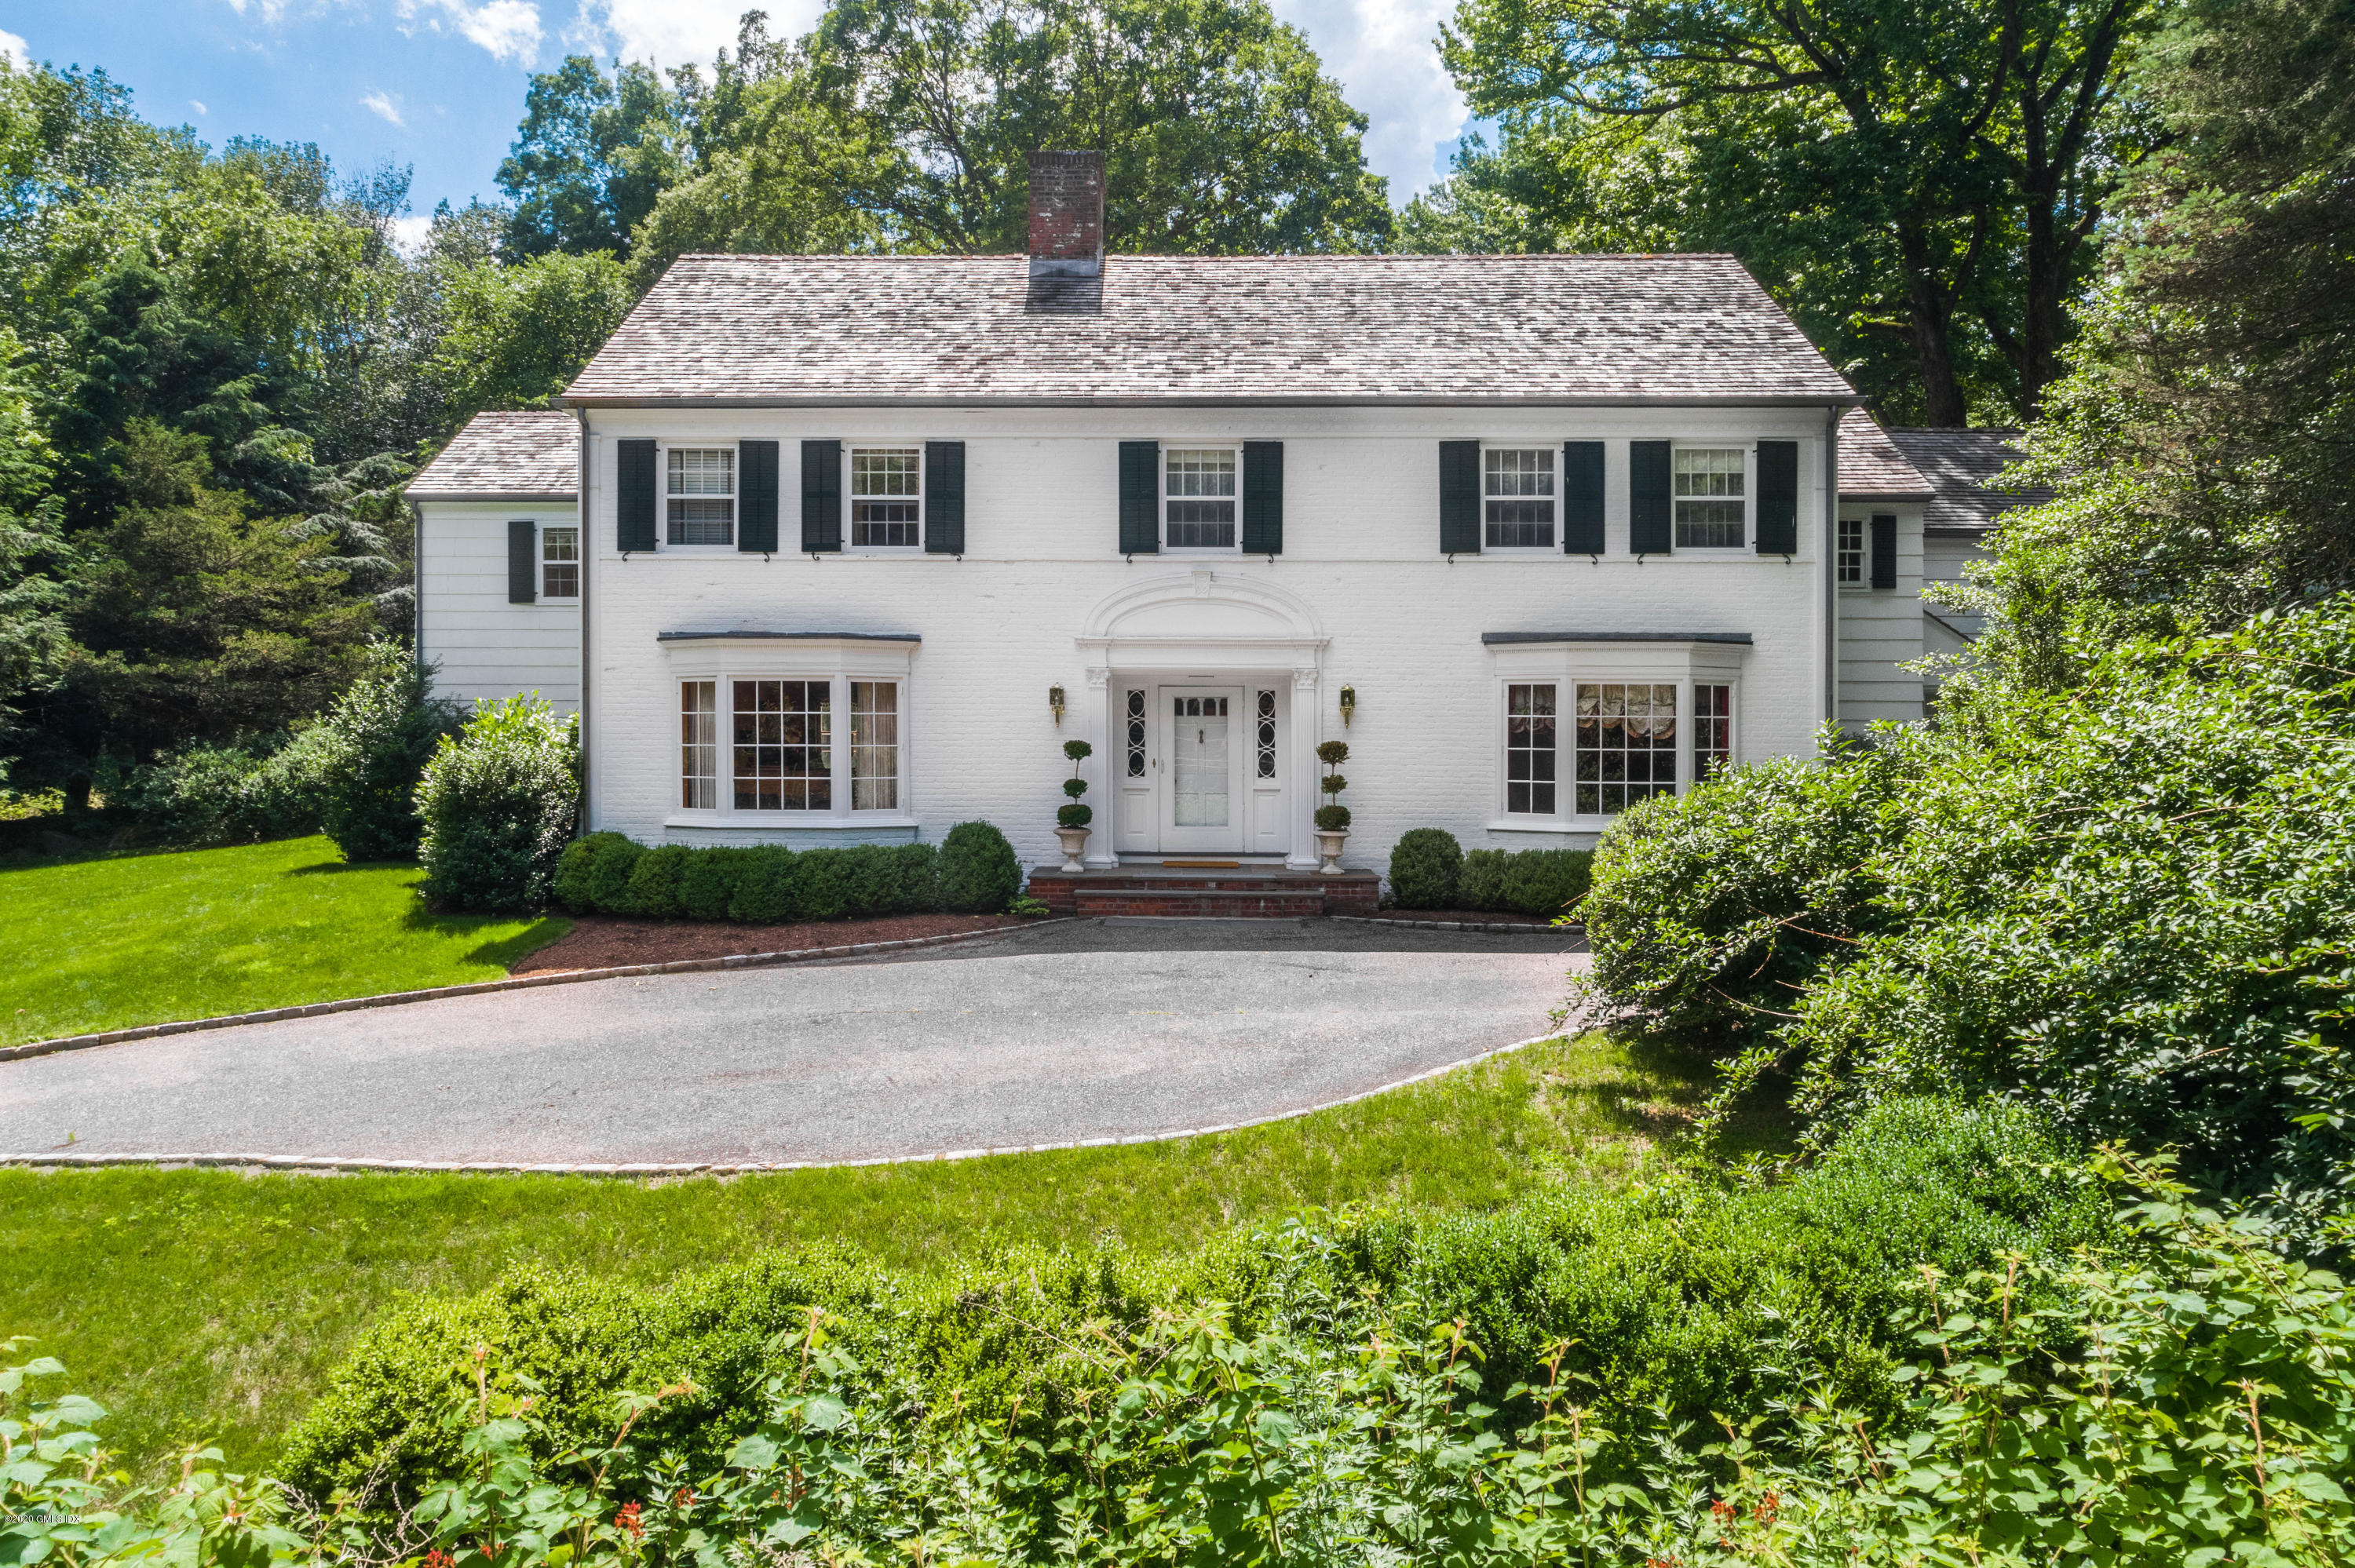 120 Zaccheus Mead Lane, Greenwich, Connecticut 06831, 6 Bedrooms Bedrooms, ,4 BathroomsBathrooms,Single family,For sale,Zaccheus Mead,111959